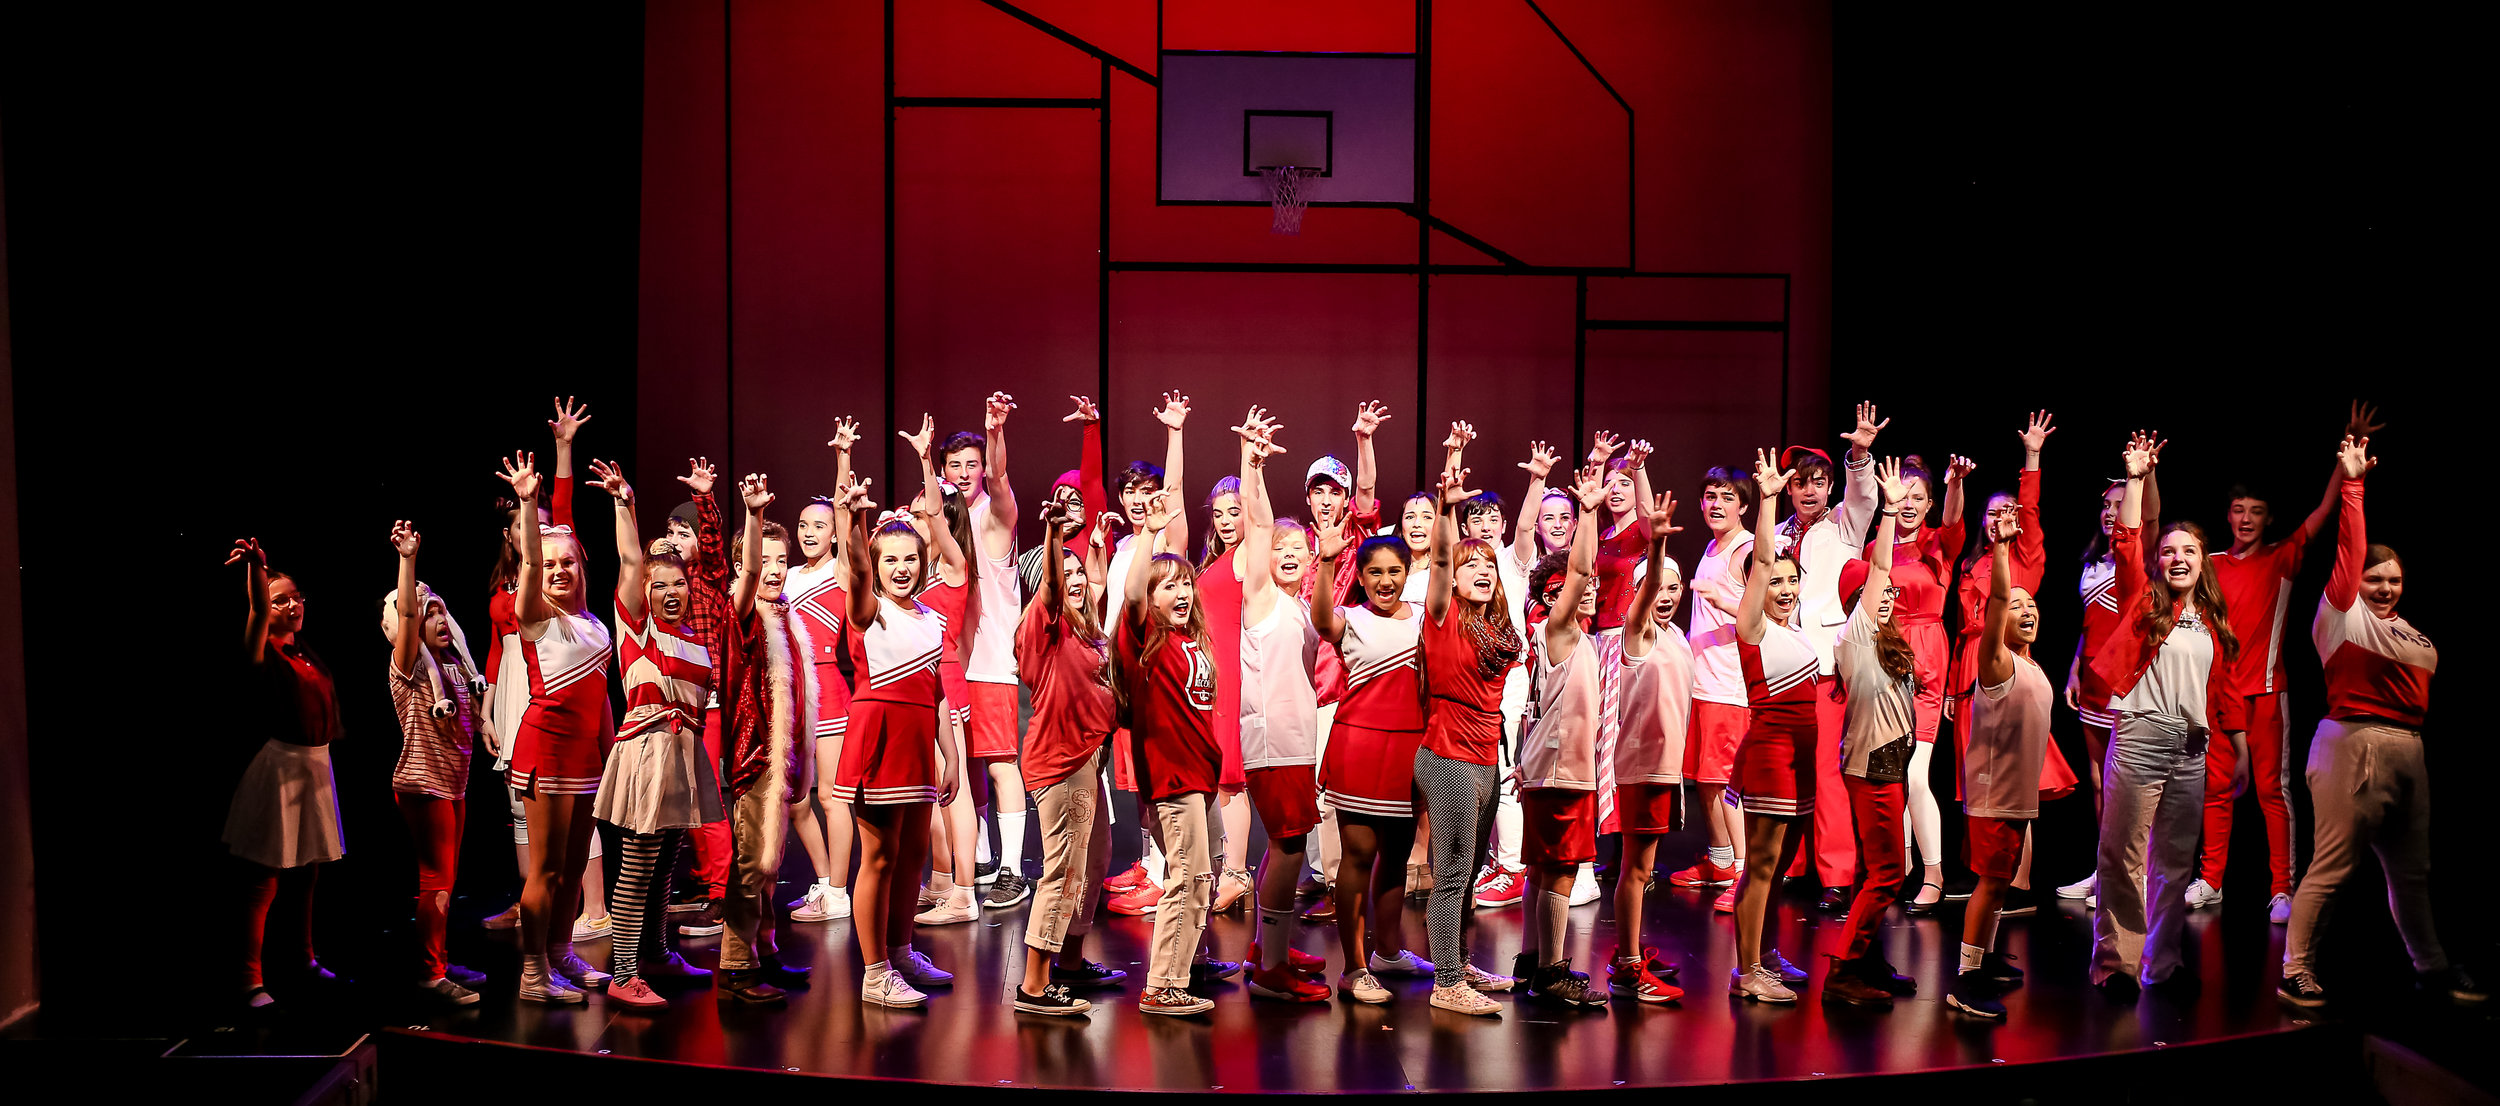 KIDSTAGE Issaquah - High School Musical jr., 2019